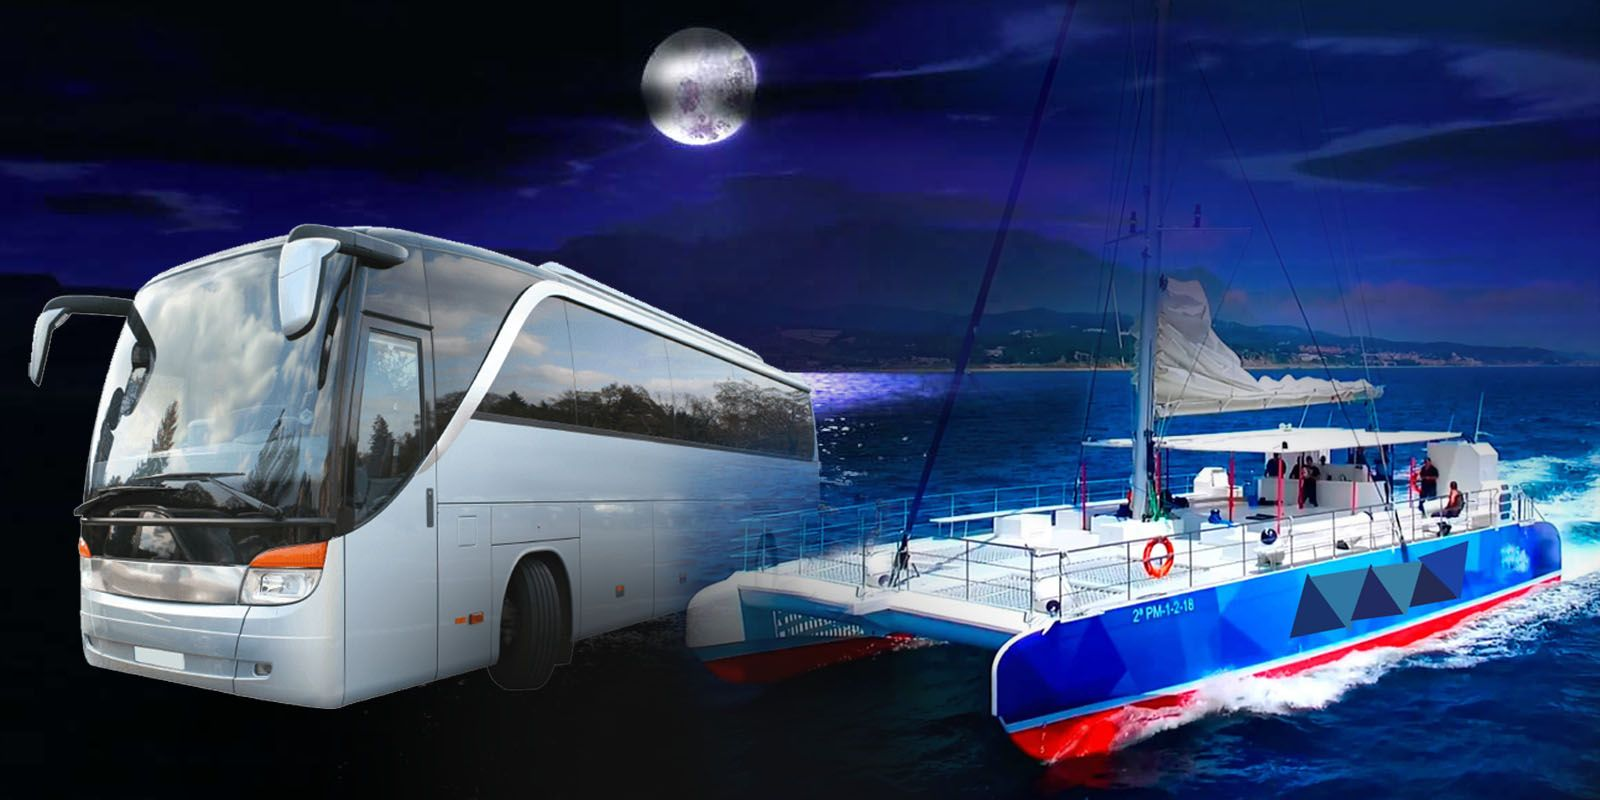 Bus Barco privado y disco